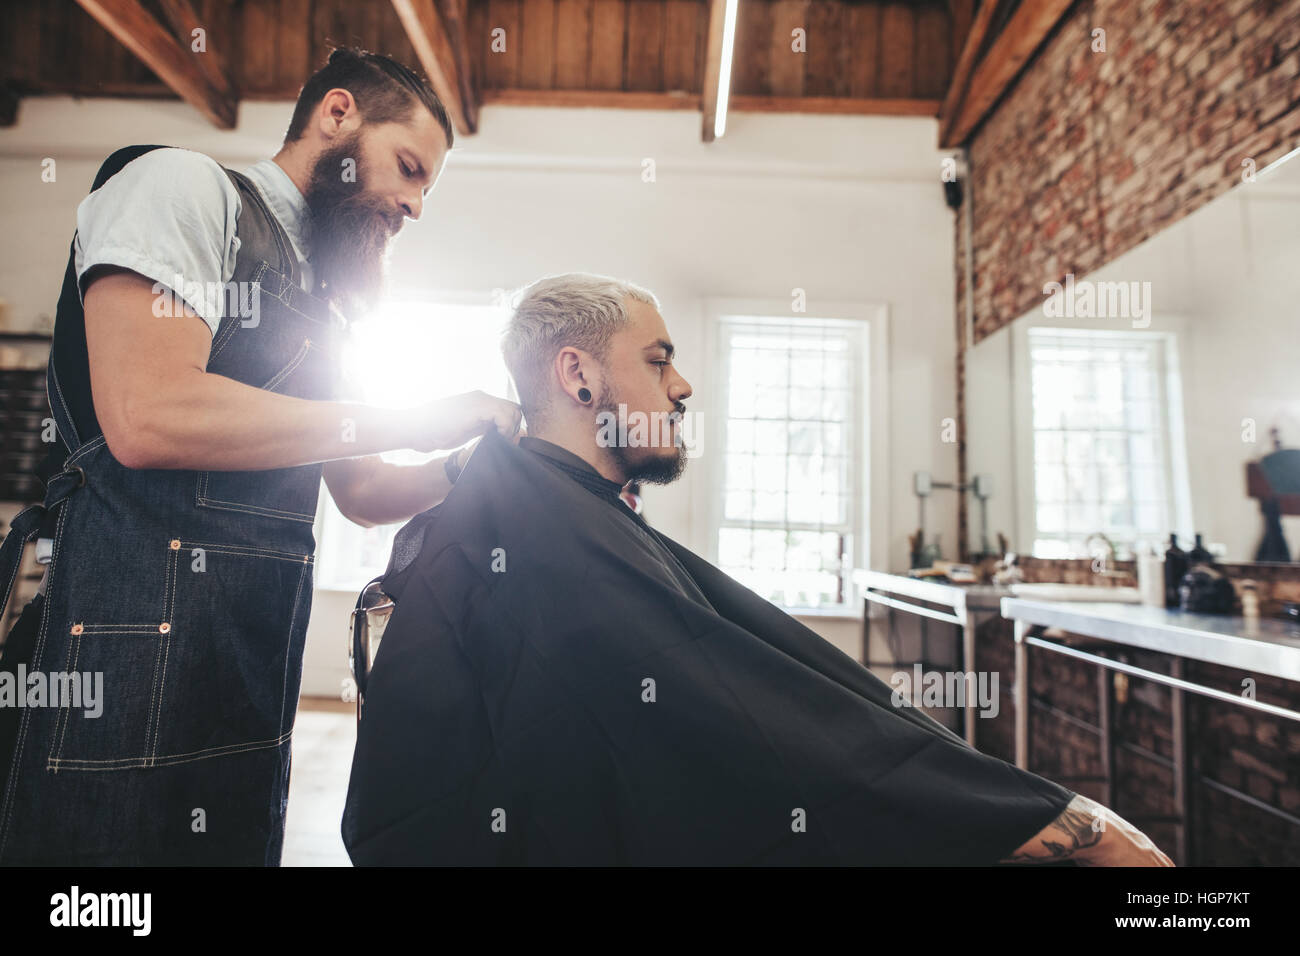 Side view shot of handsome young man getting haircut in salon. Hairstylist serving client in barber shop. - Stock Image